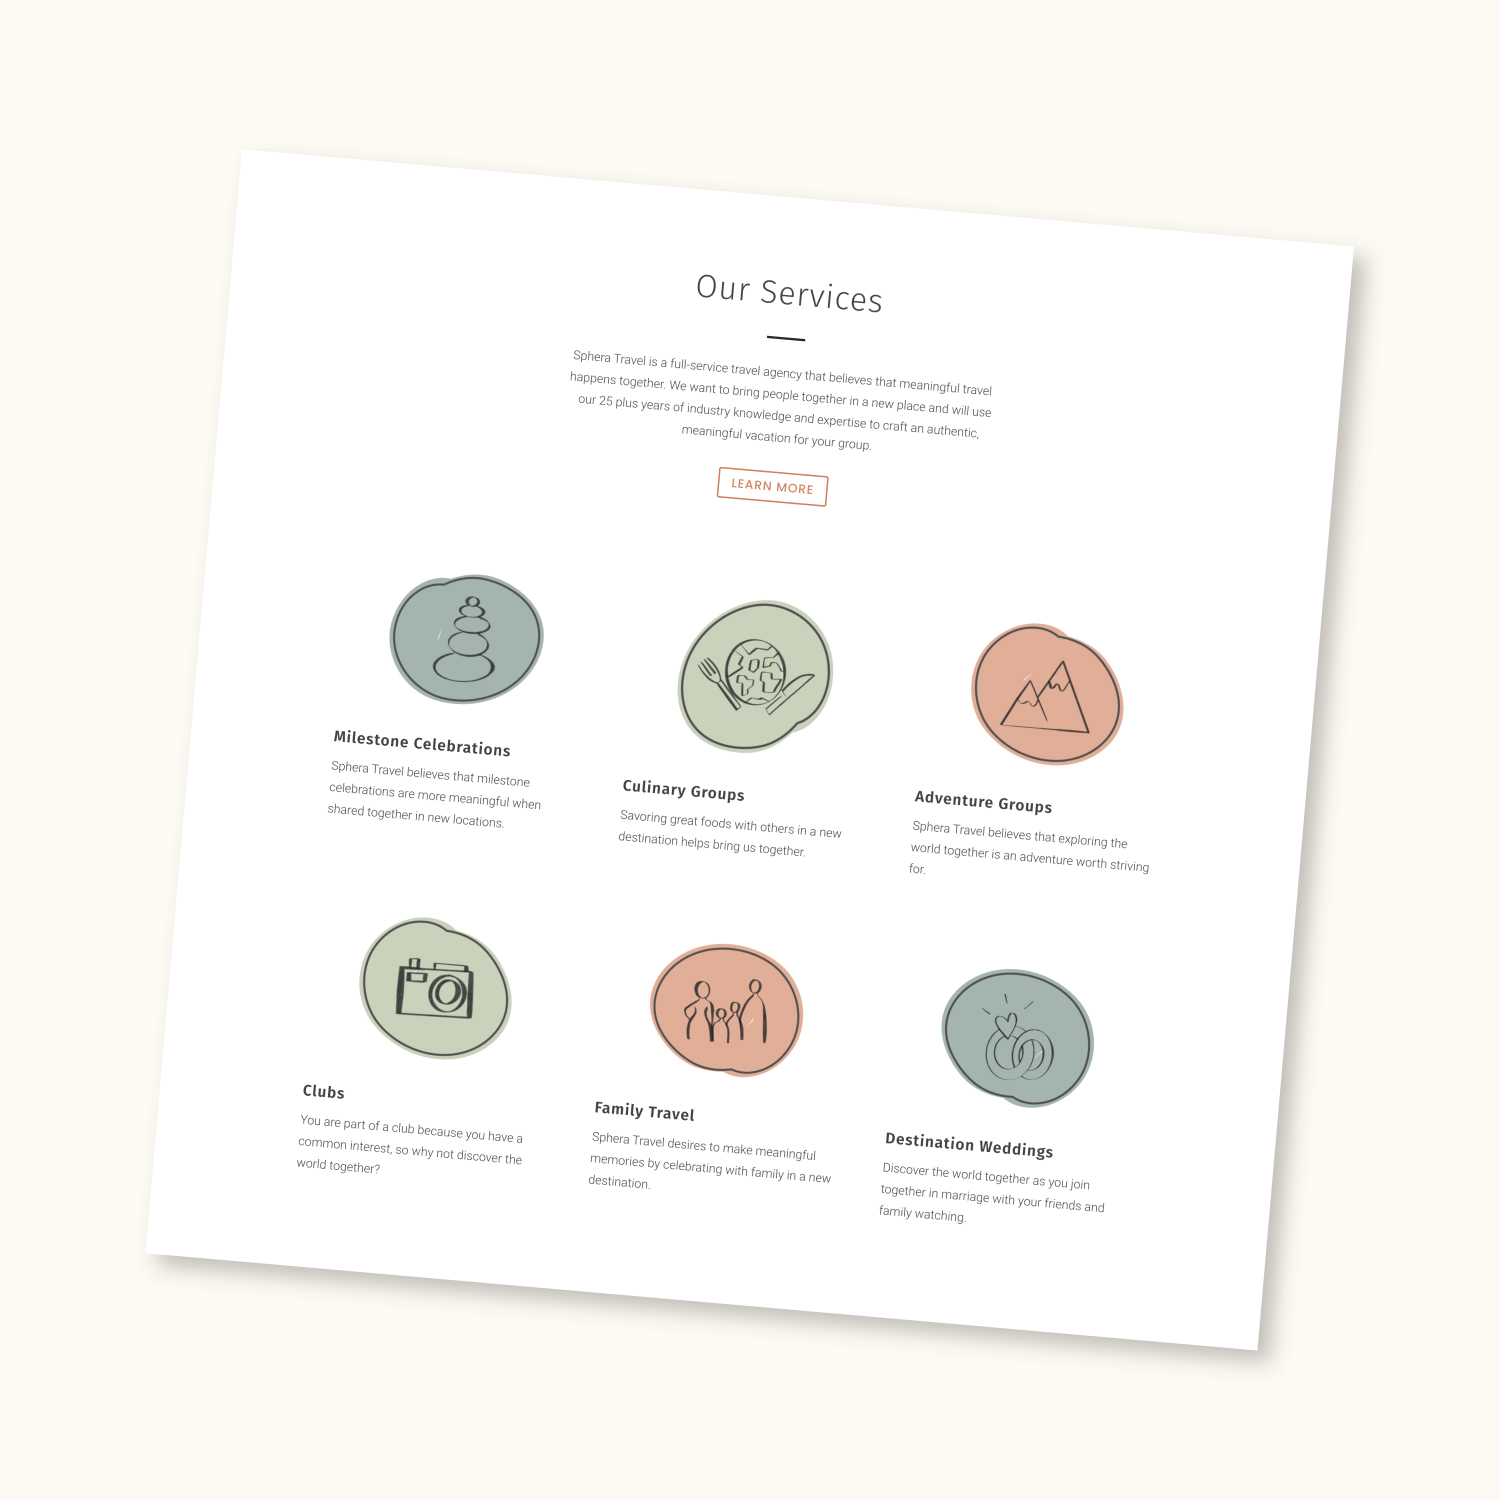 Branded icon examples